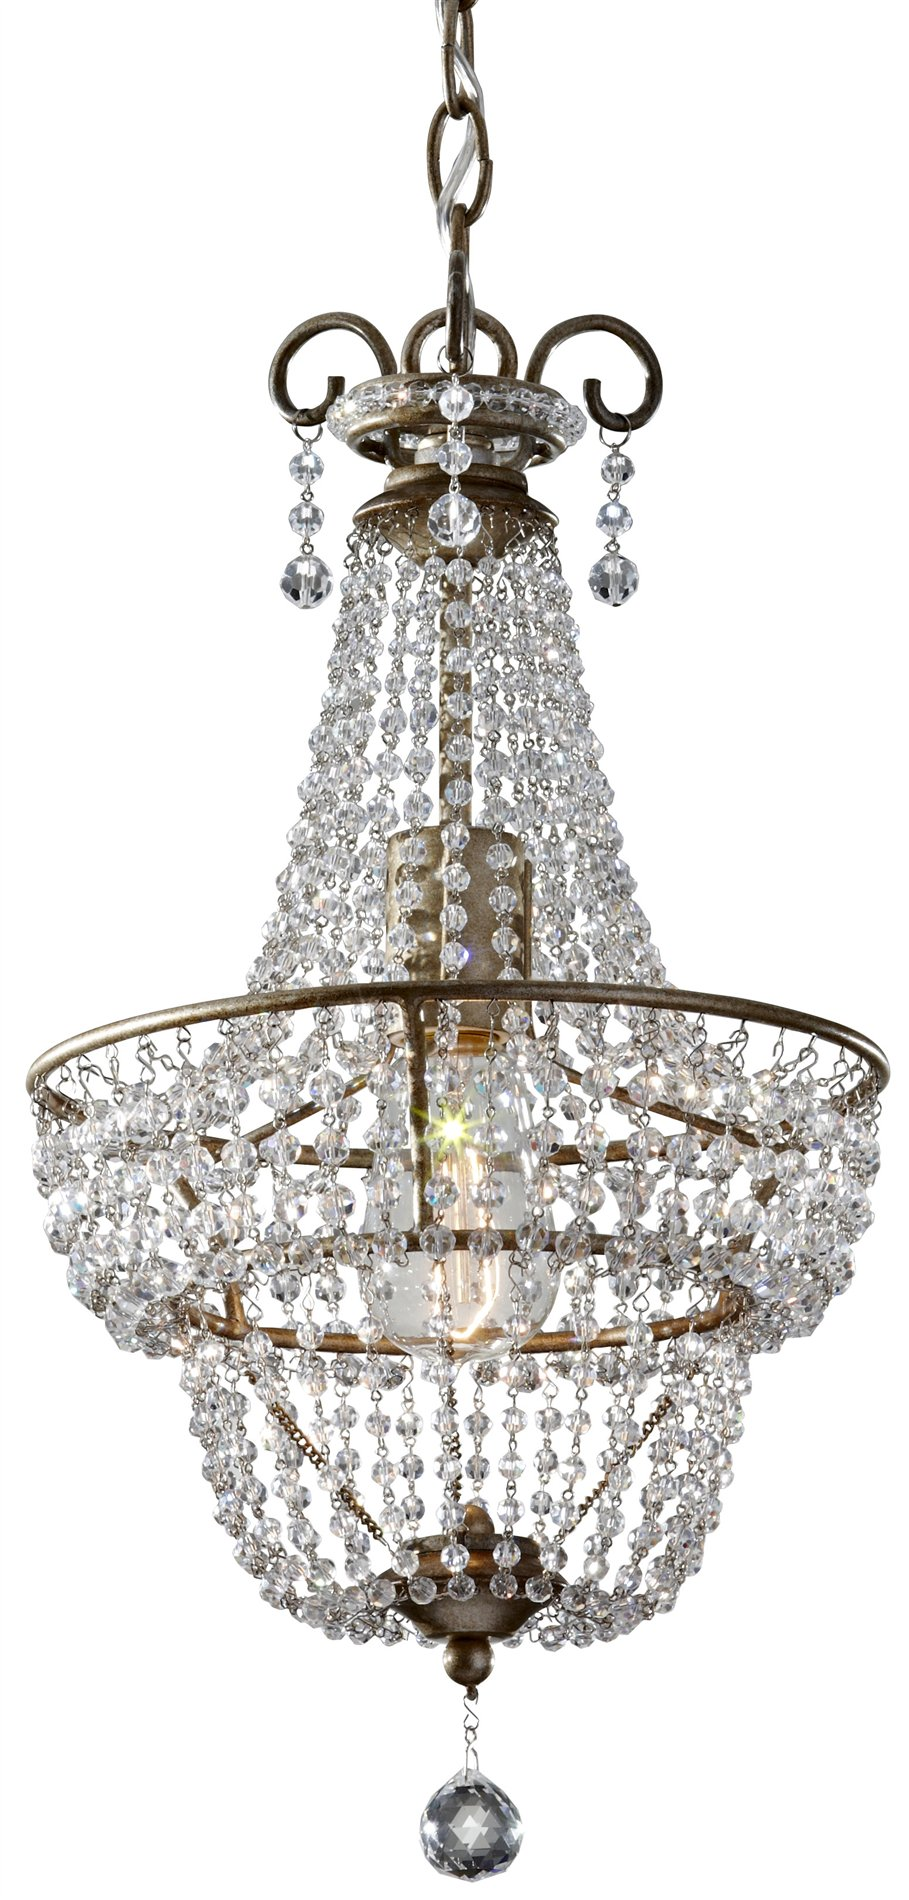 Murray Feiss F2709 1bus Dutchess Traditional Chandelier